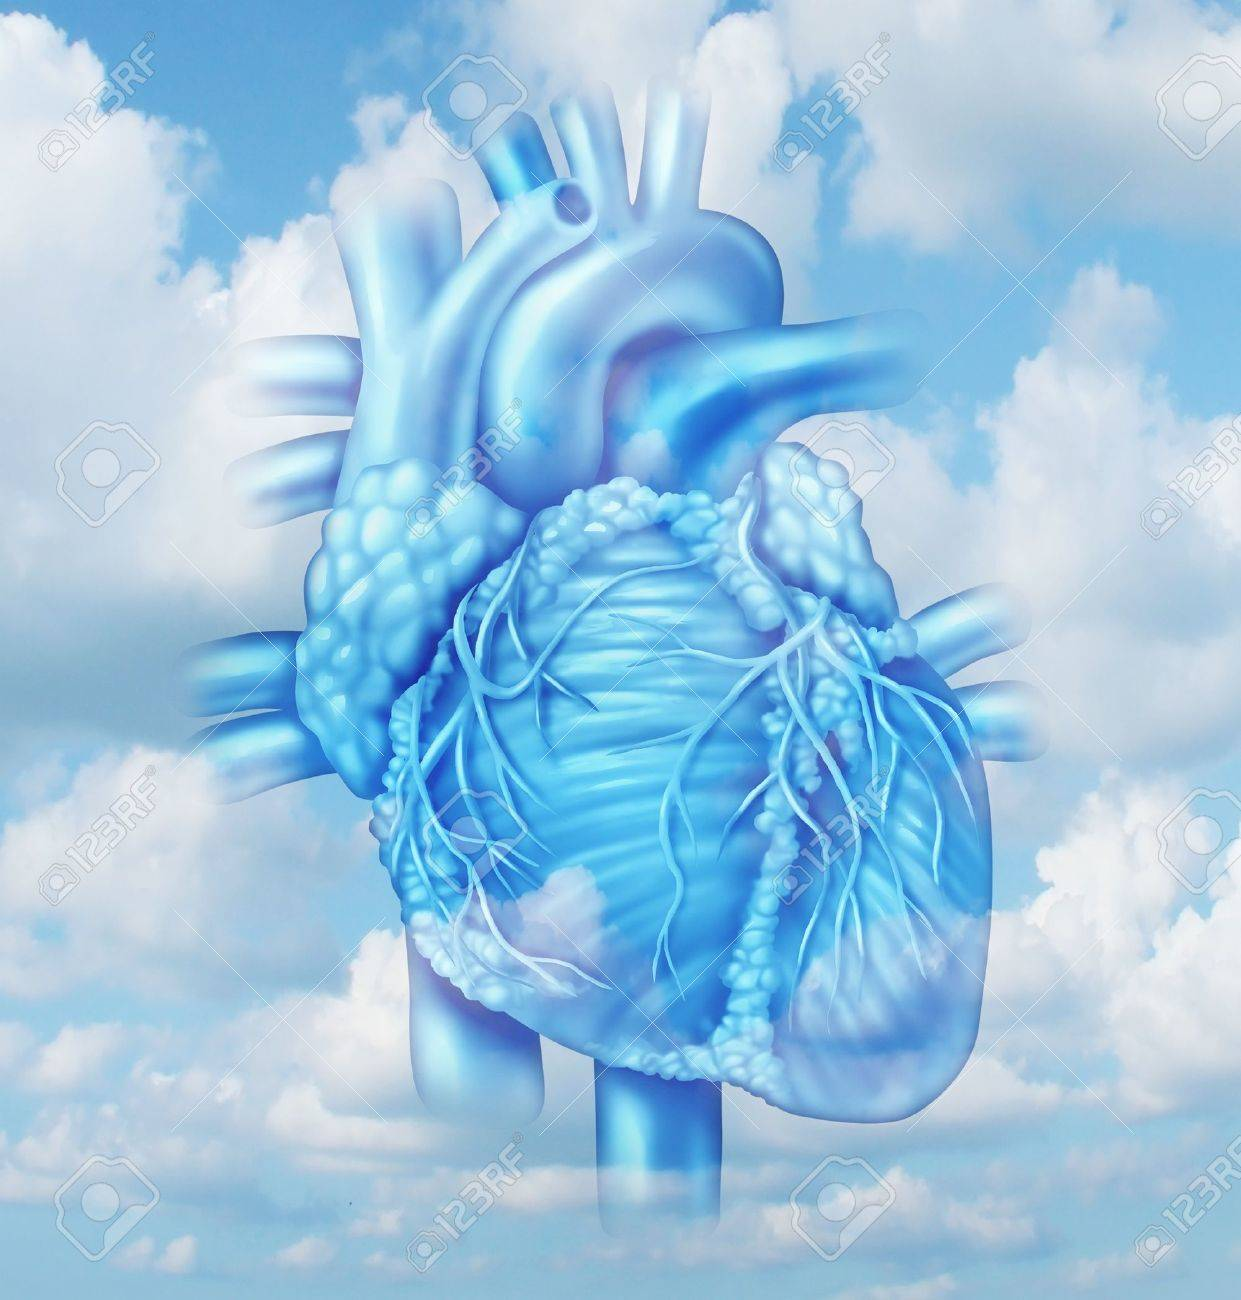 Heart health medical concept with a human cardiovascular body part from a healthy person on a sky background as a medical symbol of clean arteries Stock Photo - 20235845